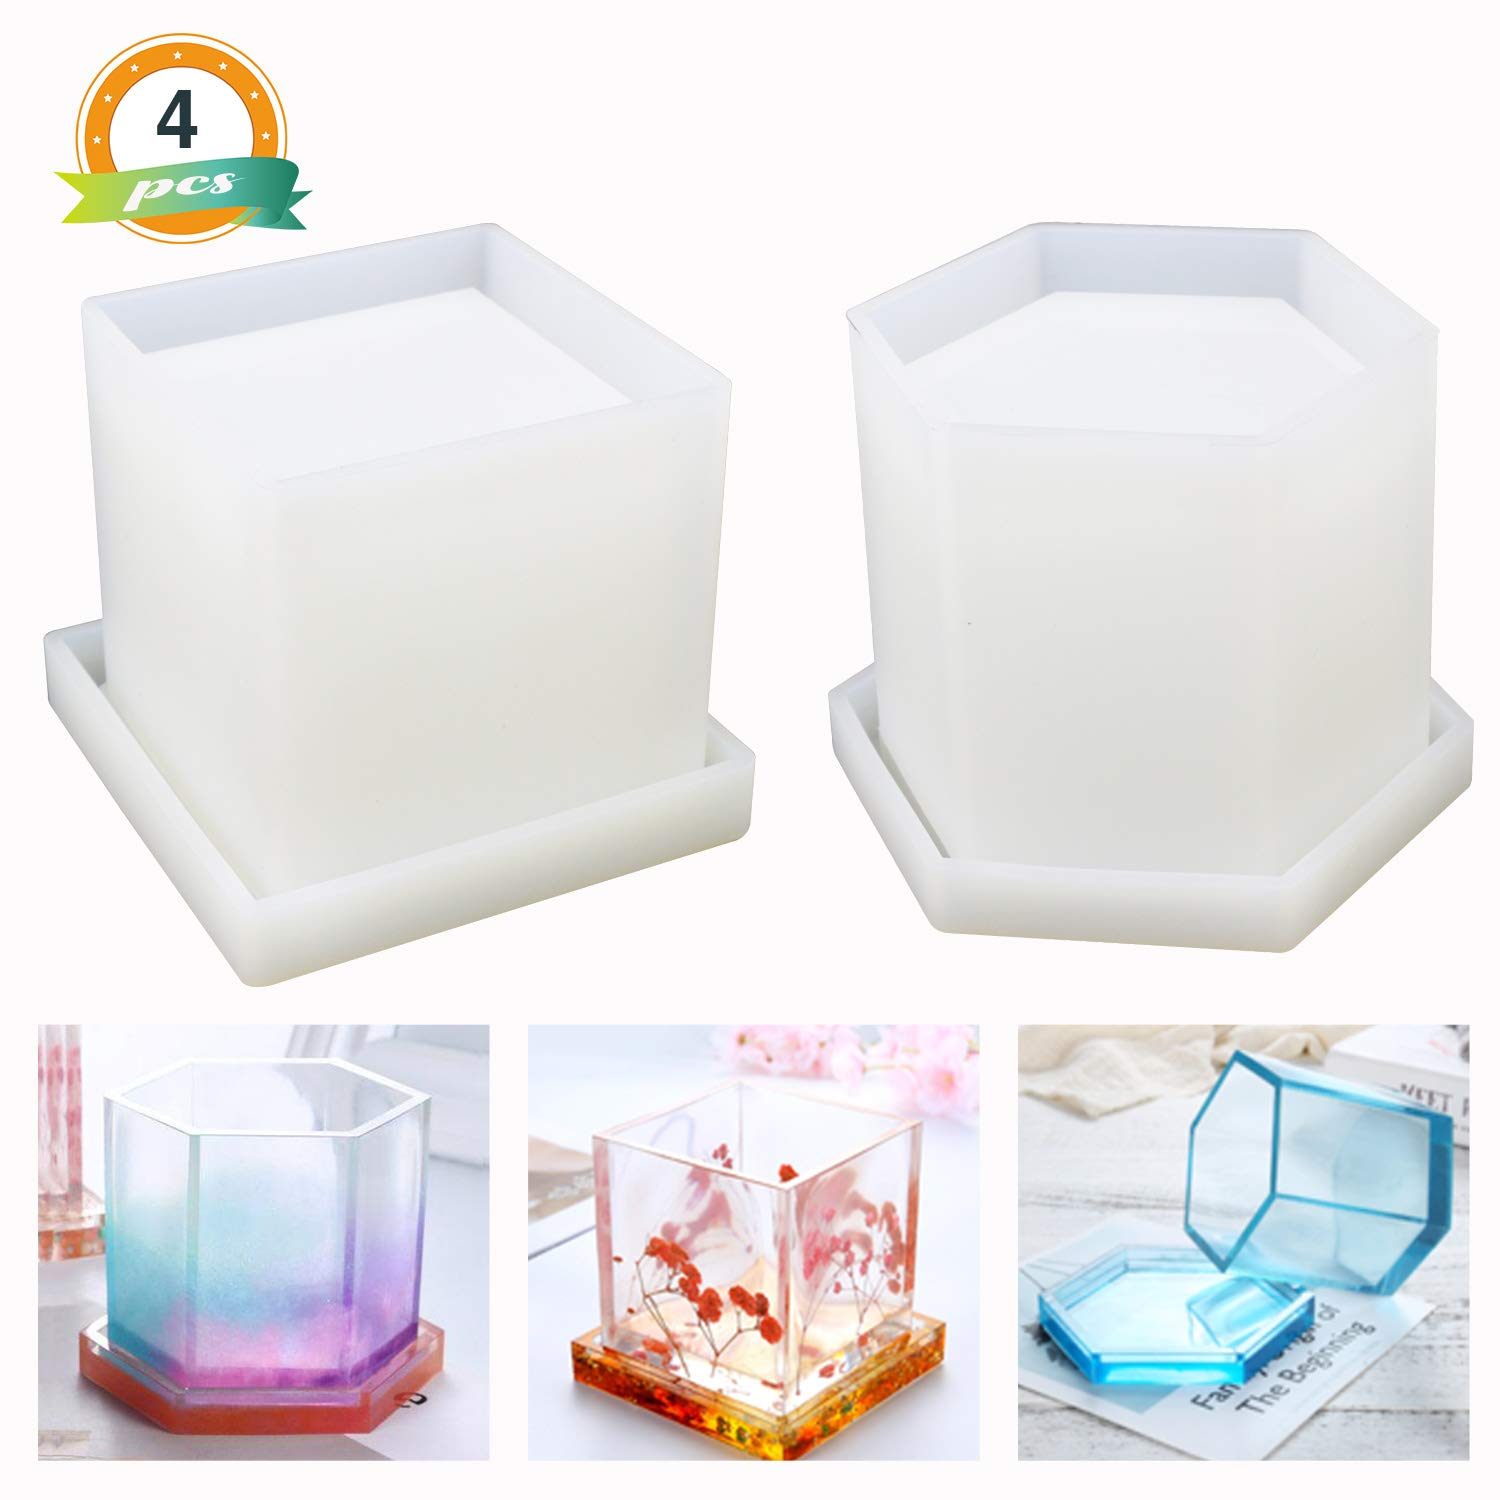 Large Resin Molds LET'S RESIN Epoxy Resin Molds, Large Pen Holder Silicone Molds 2Pcs, Hexagon and Square Silicone Molds for Resin Coaster/Flower Pot/Pen Holder/Candle Holder etc by LET'S RESIN